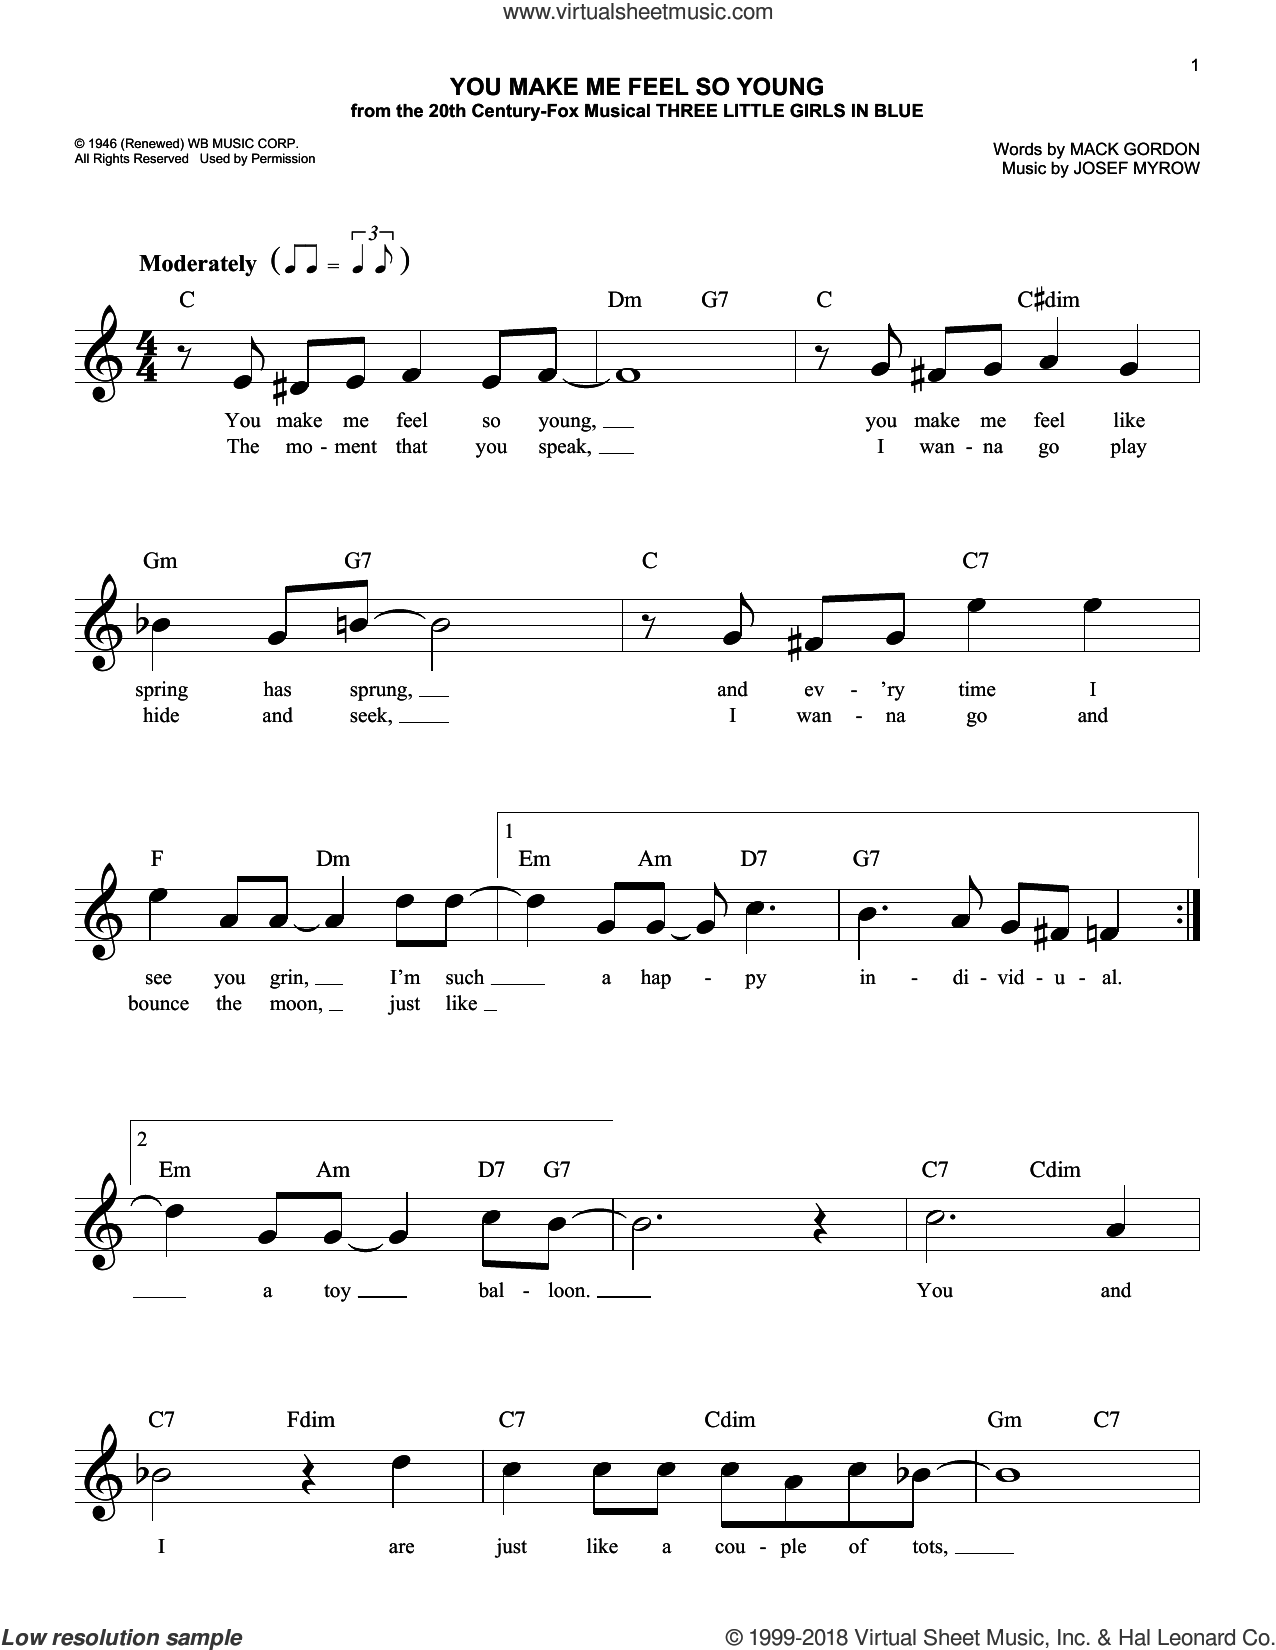 You Make Me Feel So Young sheet music for voice and other instruments (fake book) by Frank Sinatra, Josef Myrow and Mack Gordon, intermediate skill level